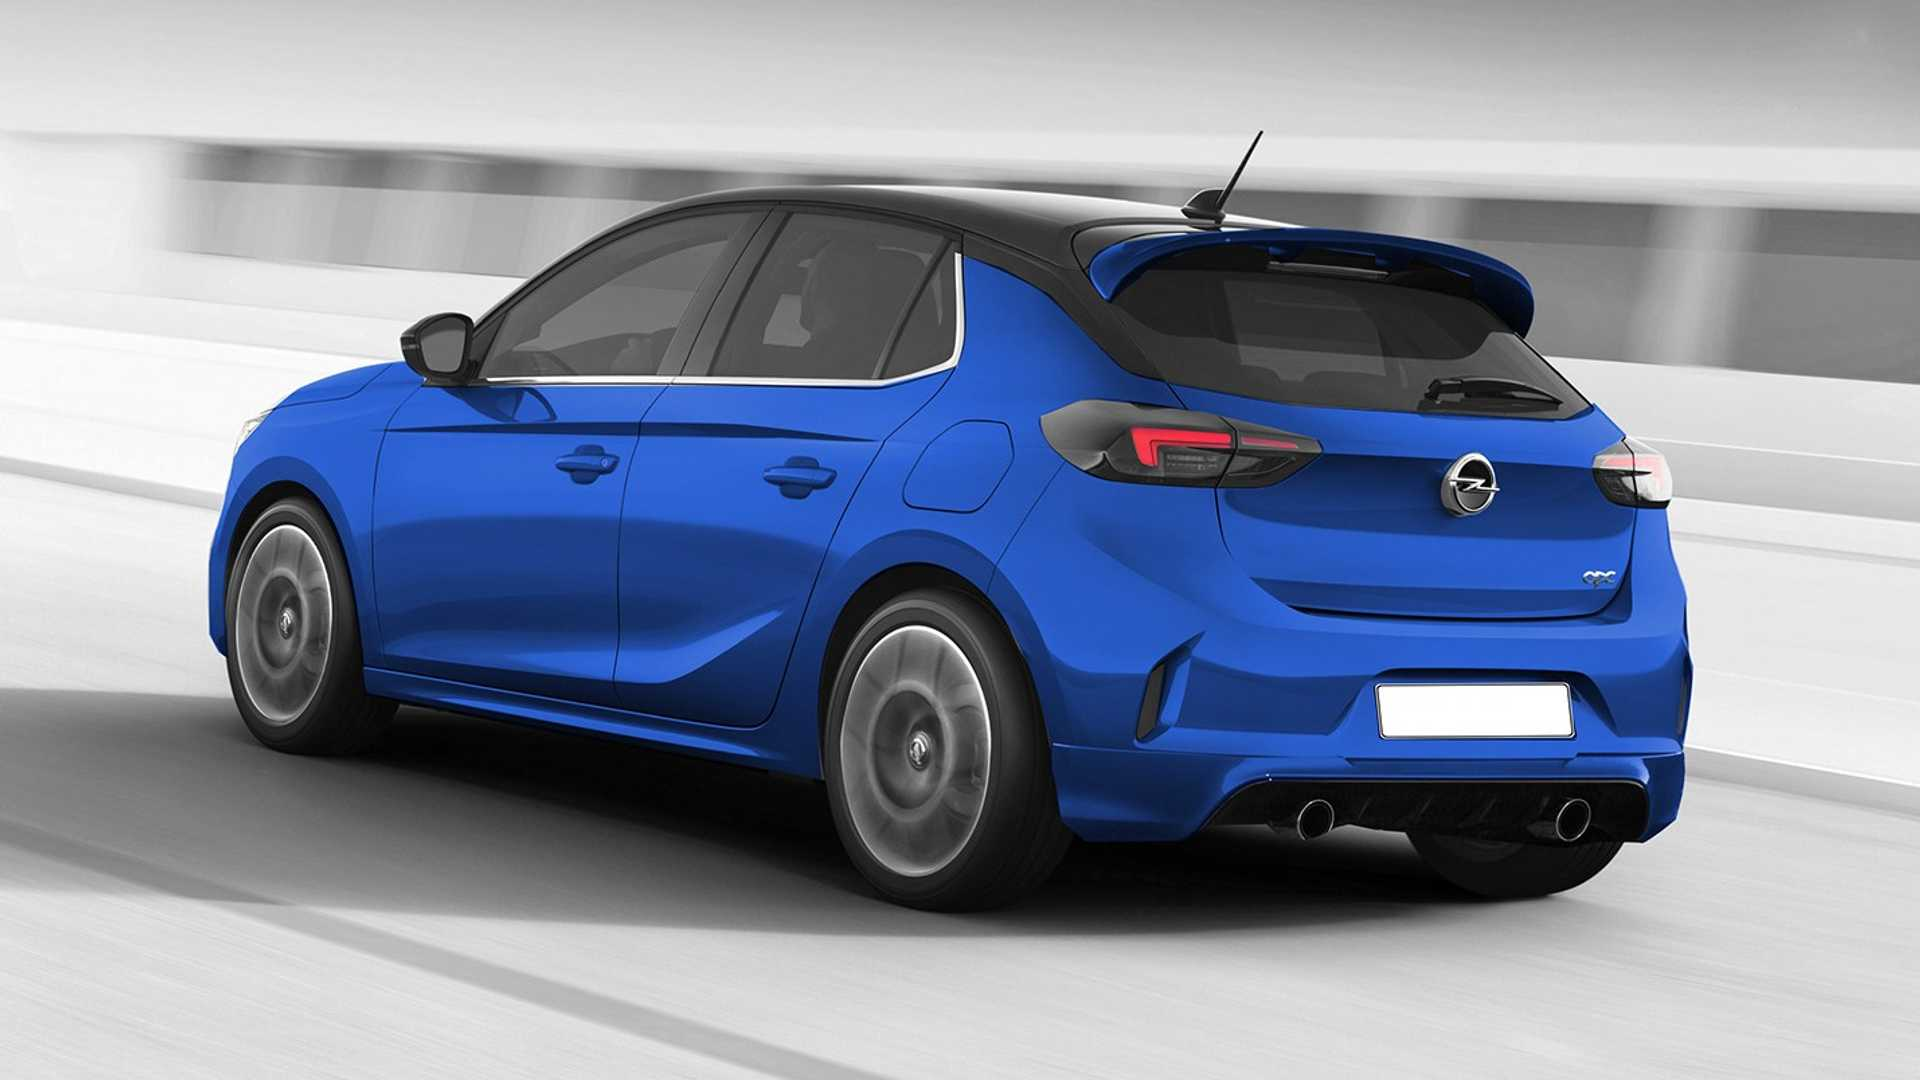 36 The Best 2020 Vauxhall Corsa VXR Specs